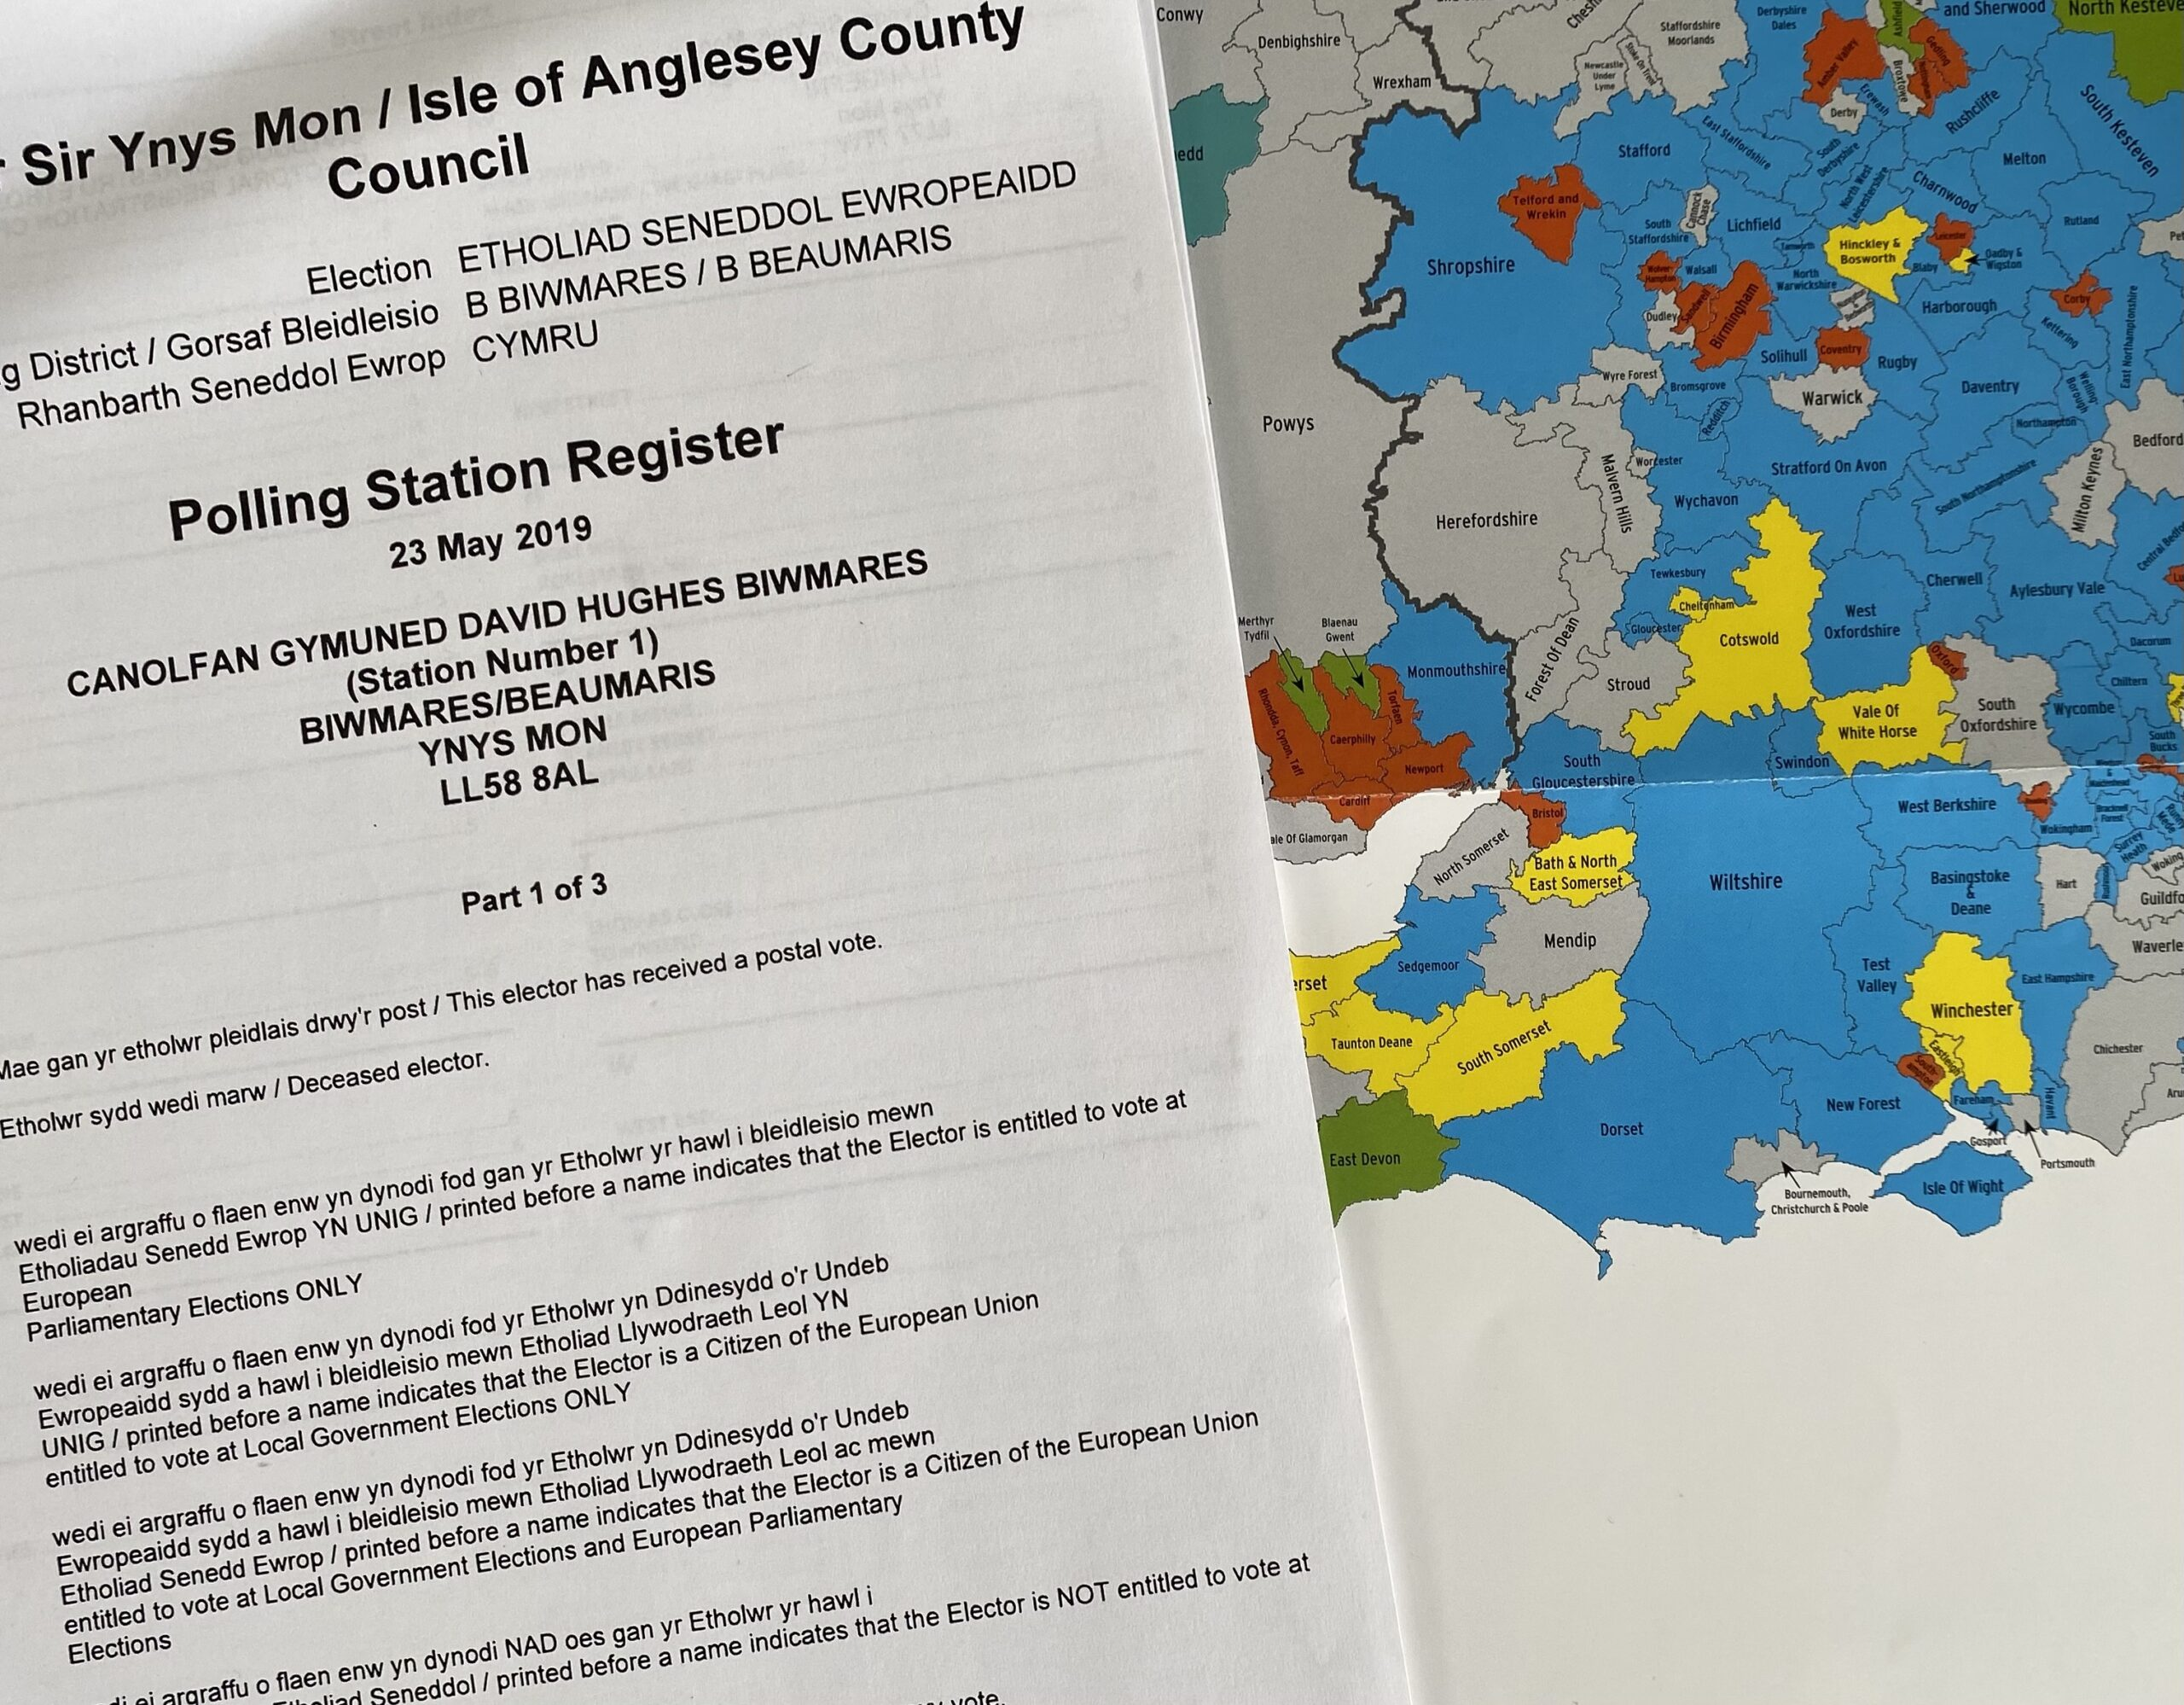 General election marked registers